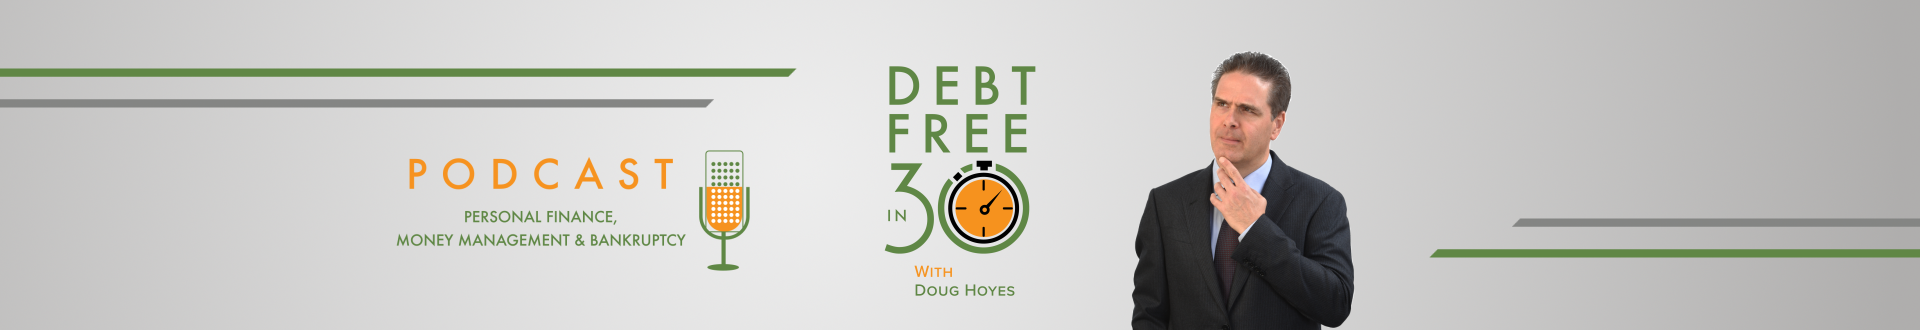 Debt Free in 30 Podcast Archive - Page 2